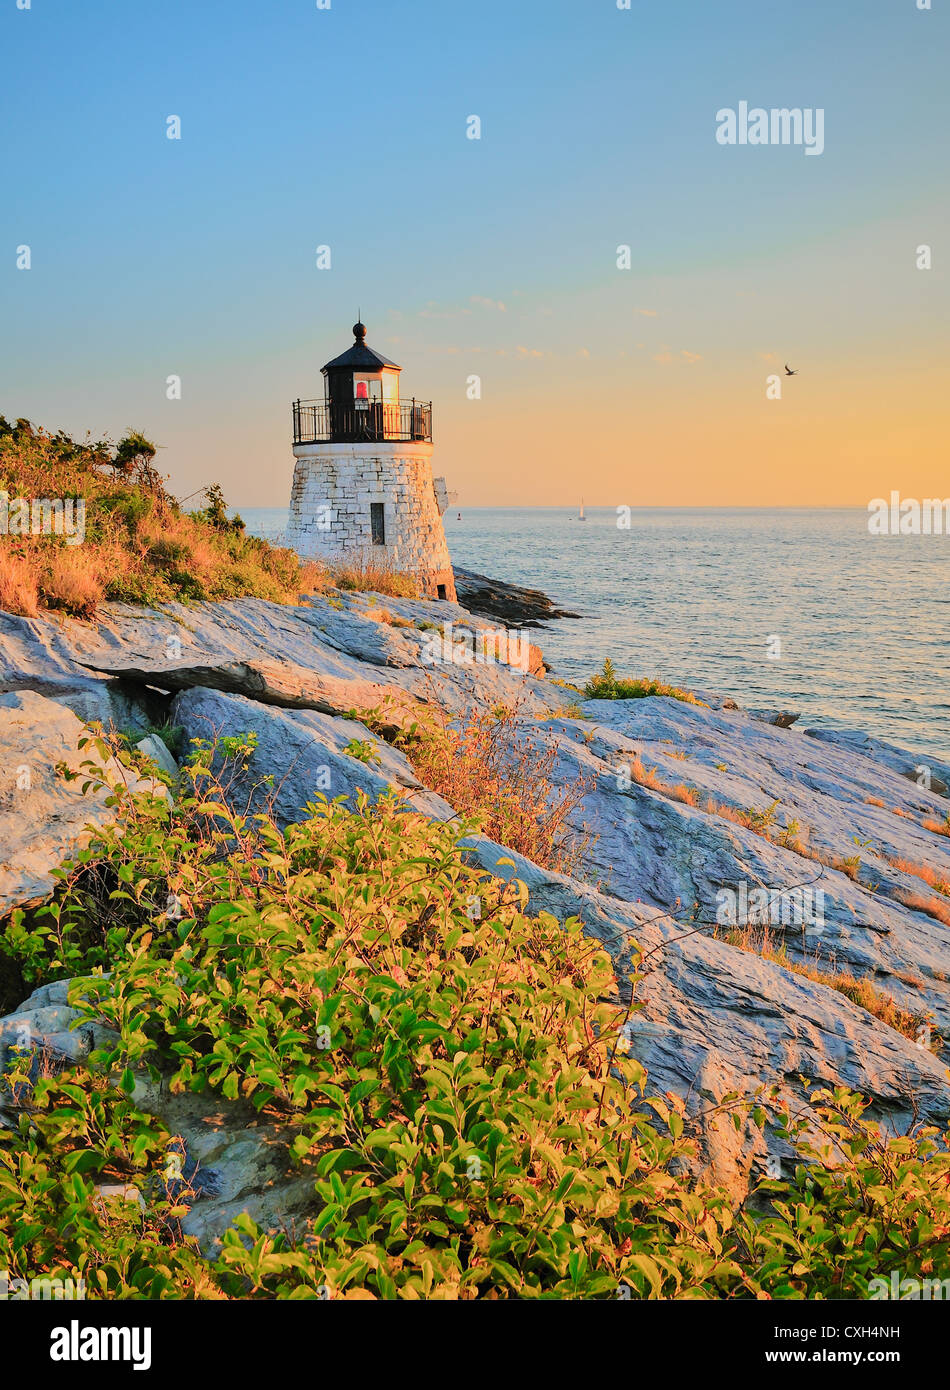 castle-hill-lighthouse-light-house-at-tw